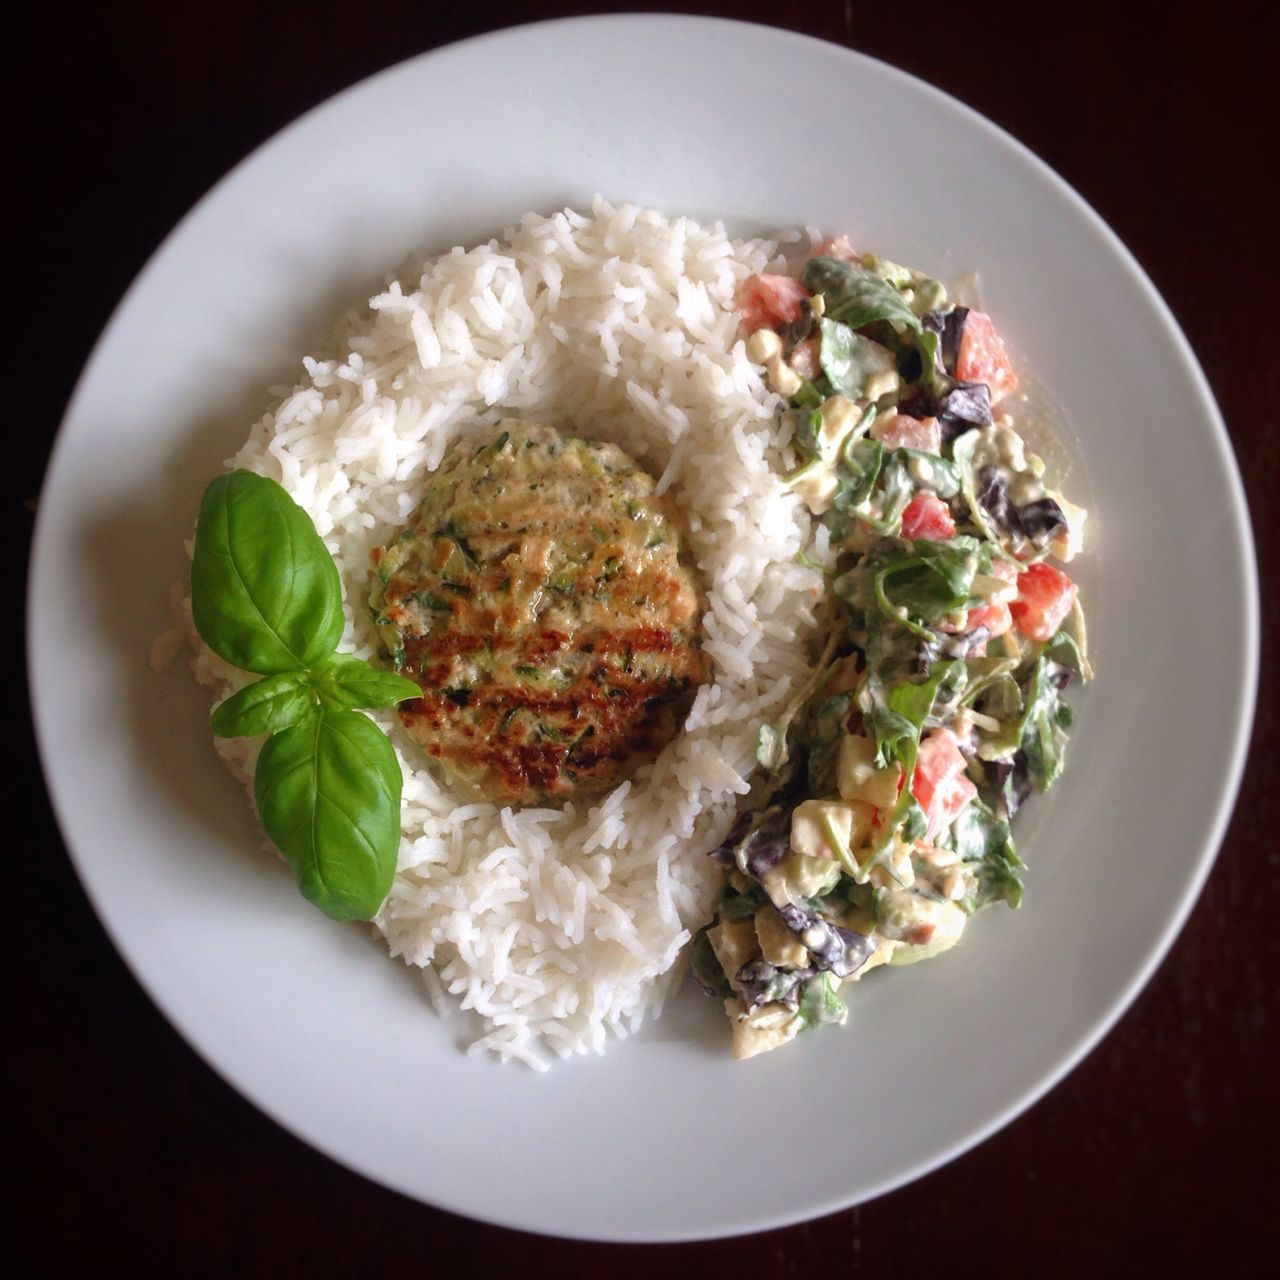 Turkey Burger With Courgette Rice Salad Fit Food Healthy Eat Eating Meal Delicious Mince Meat